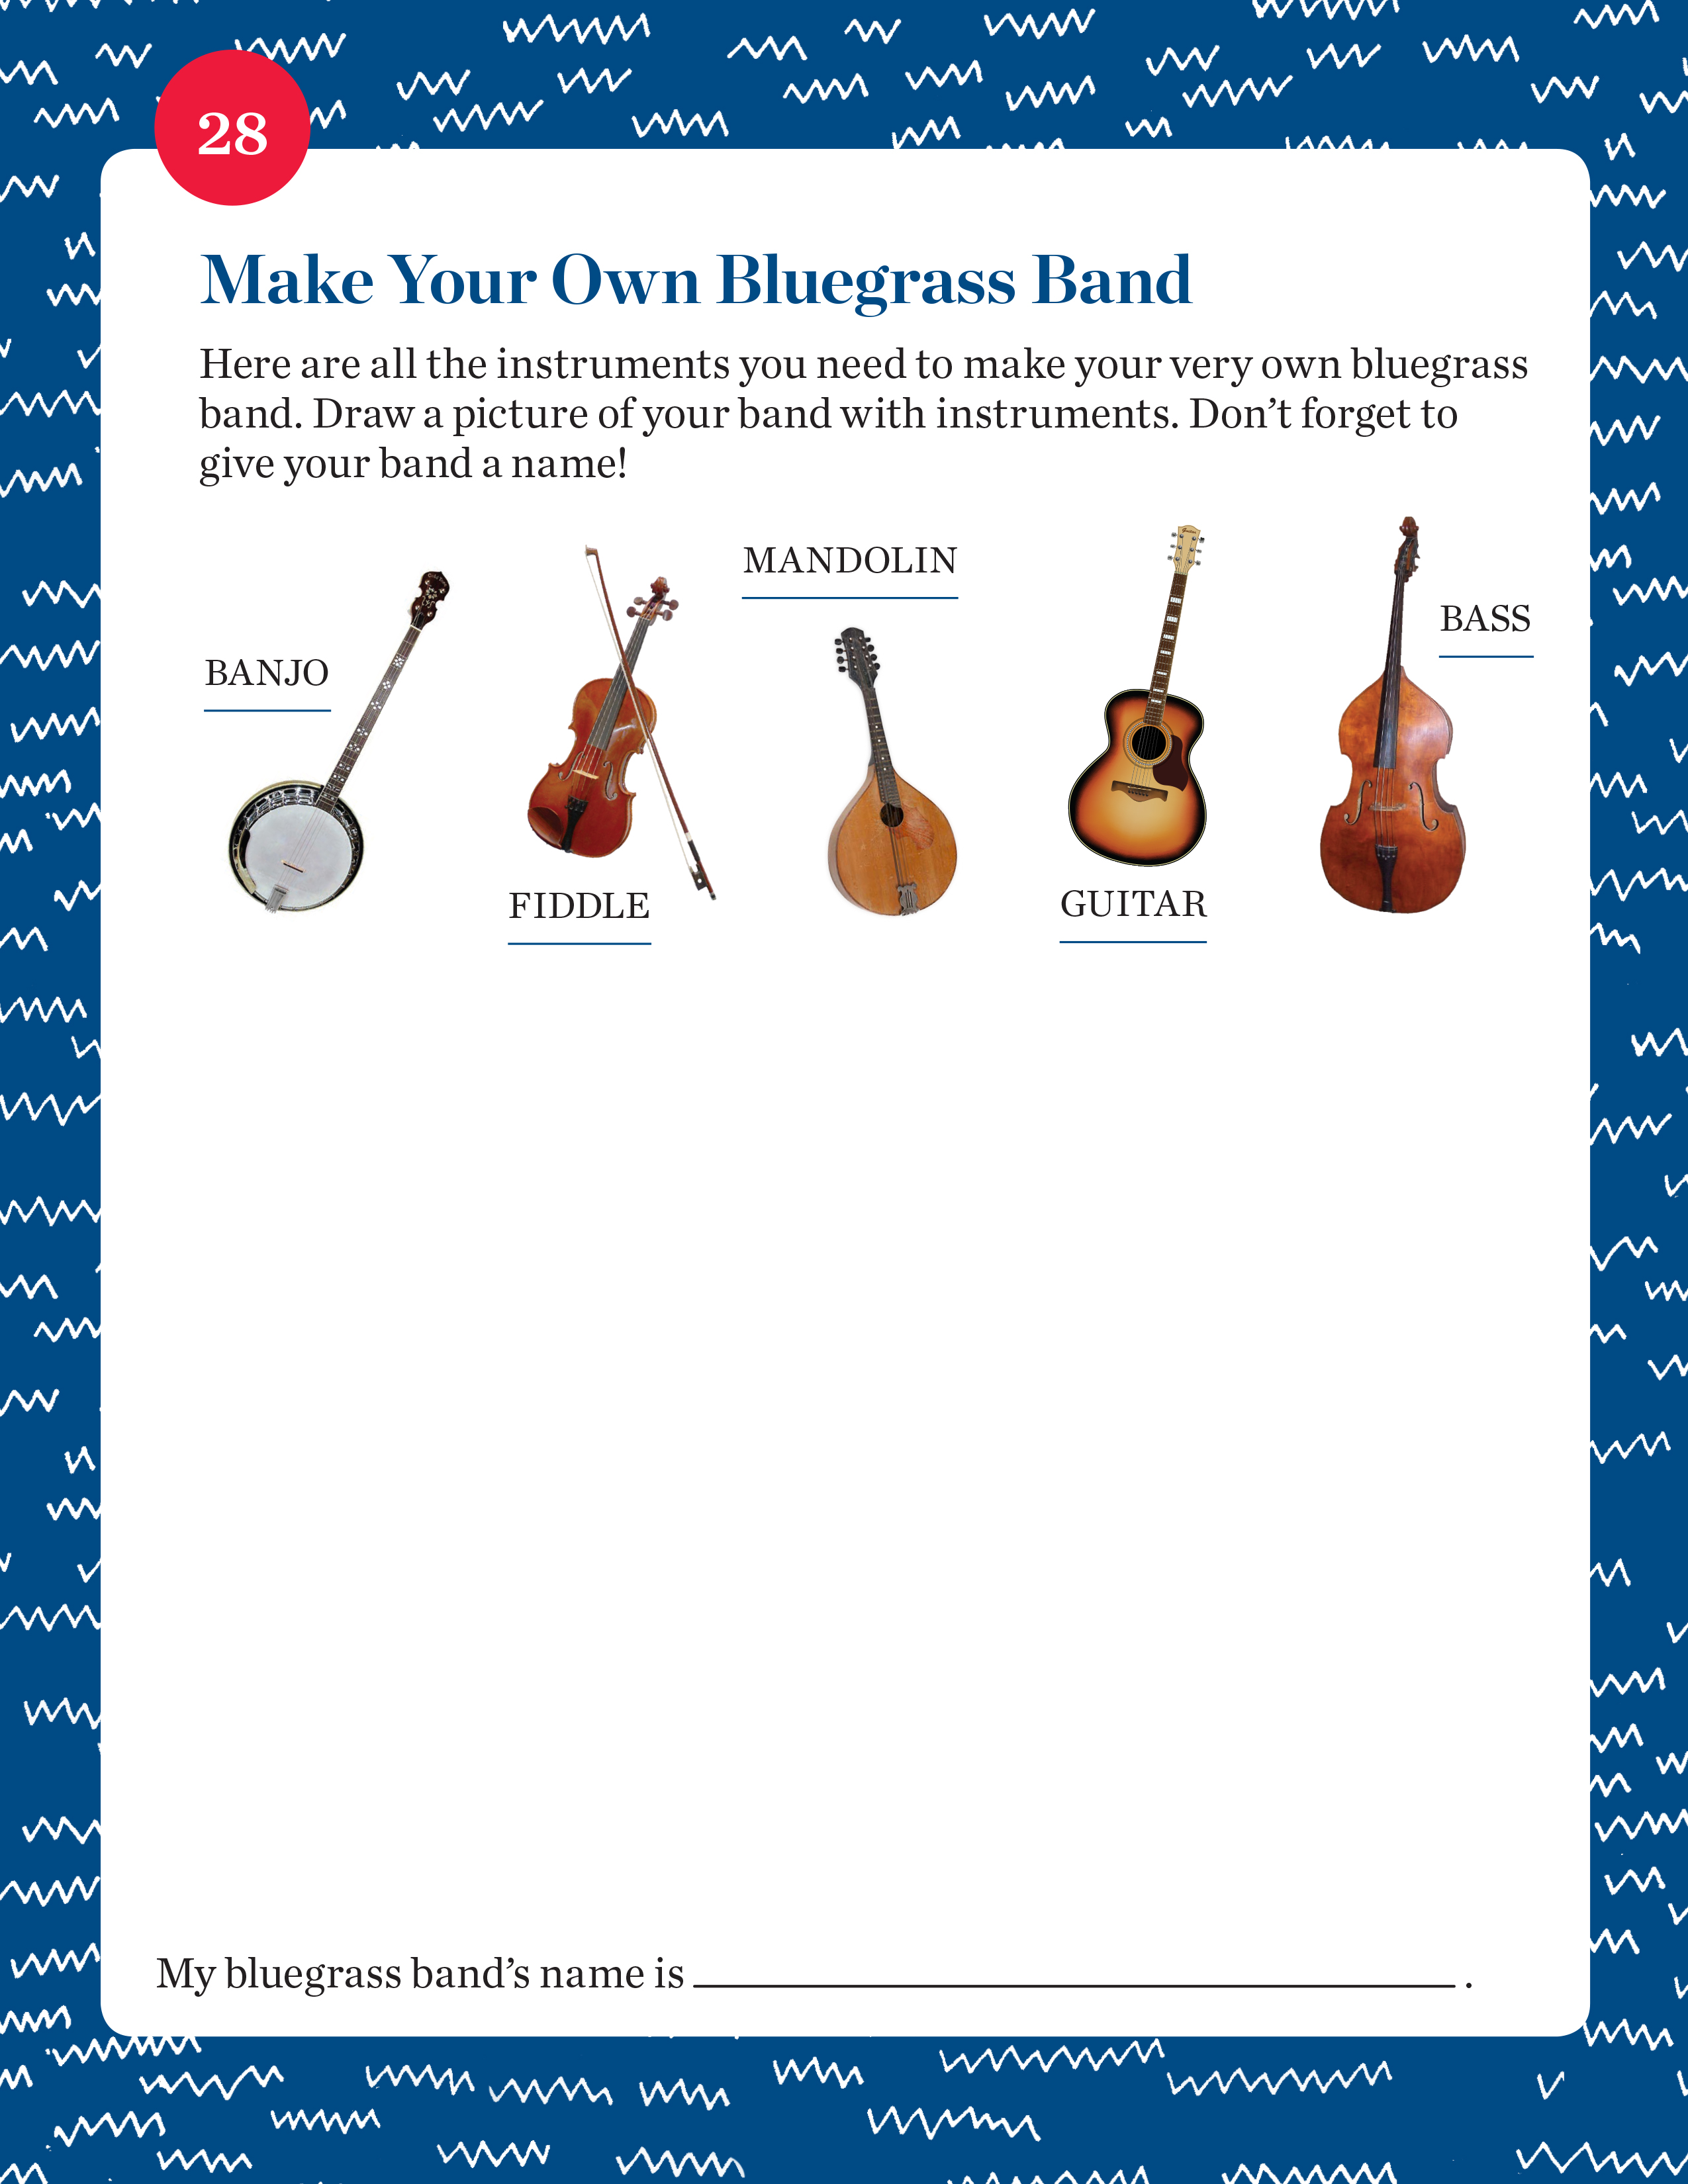 Make Your Own Bluegrass Band student activity